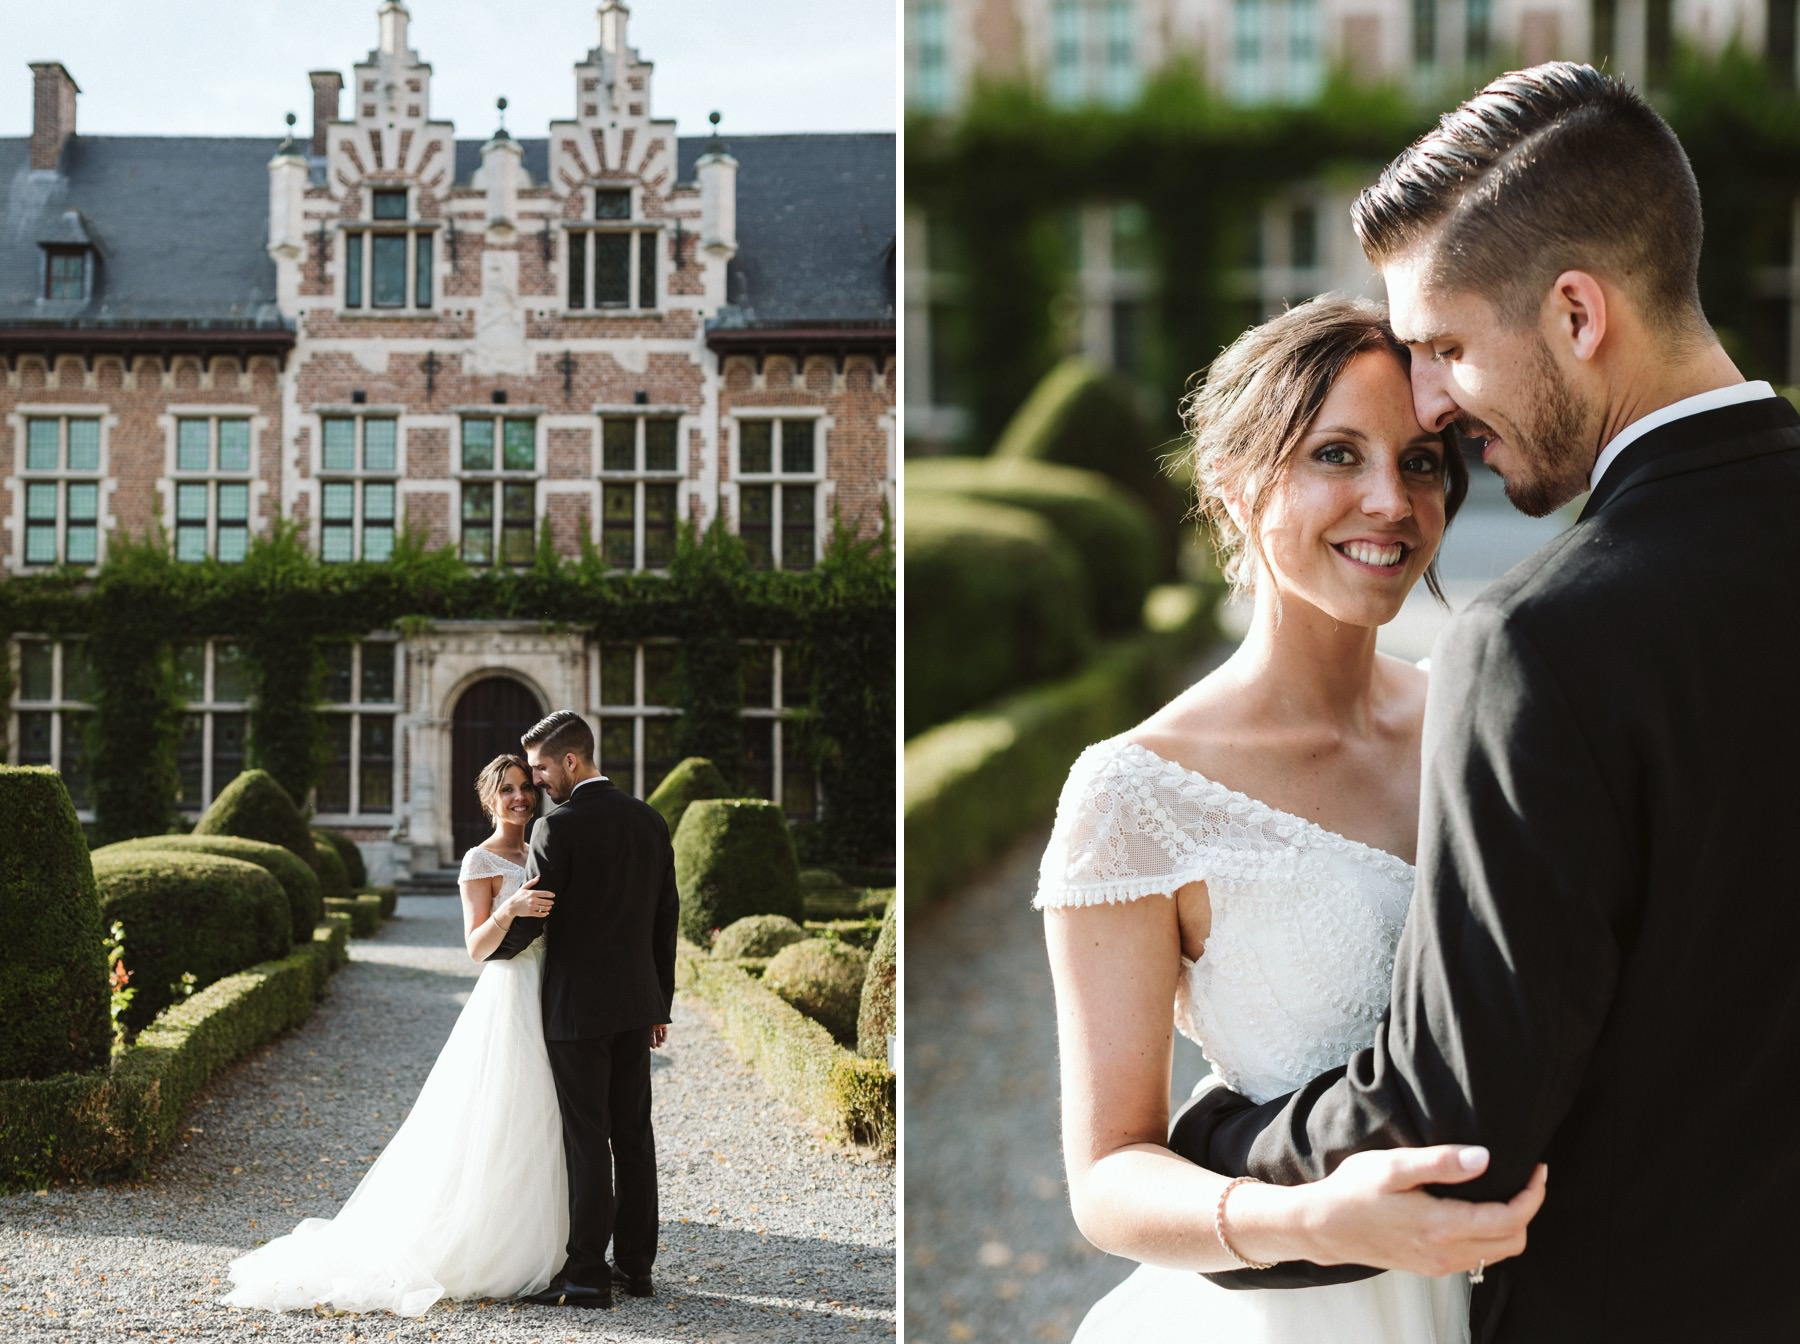 Brussels wedding photographer Gaasbeek Castle